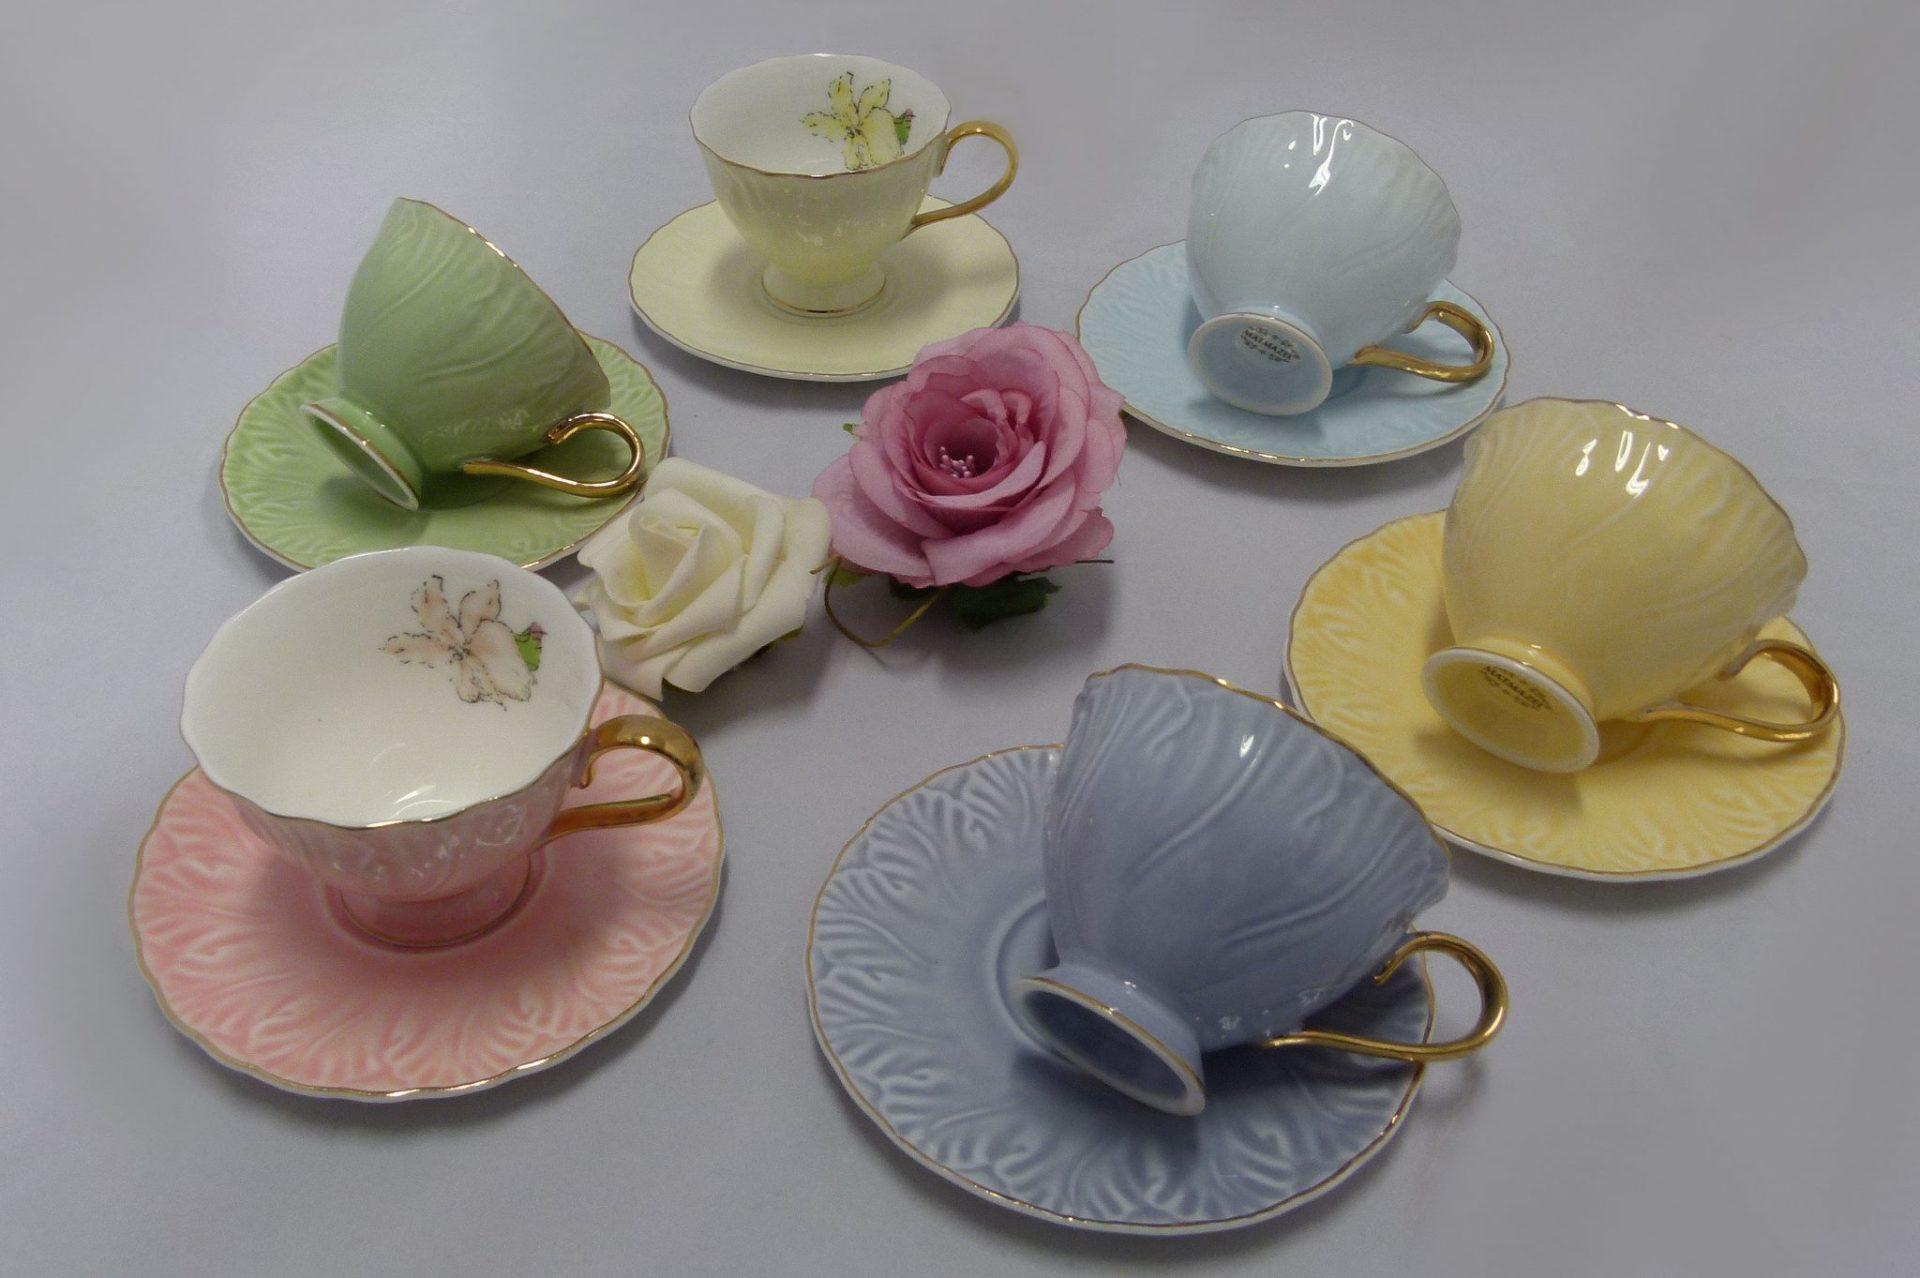 Espresso Cup And Saucer Turkish Coffee Cups In Pastel Colors